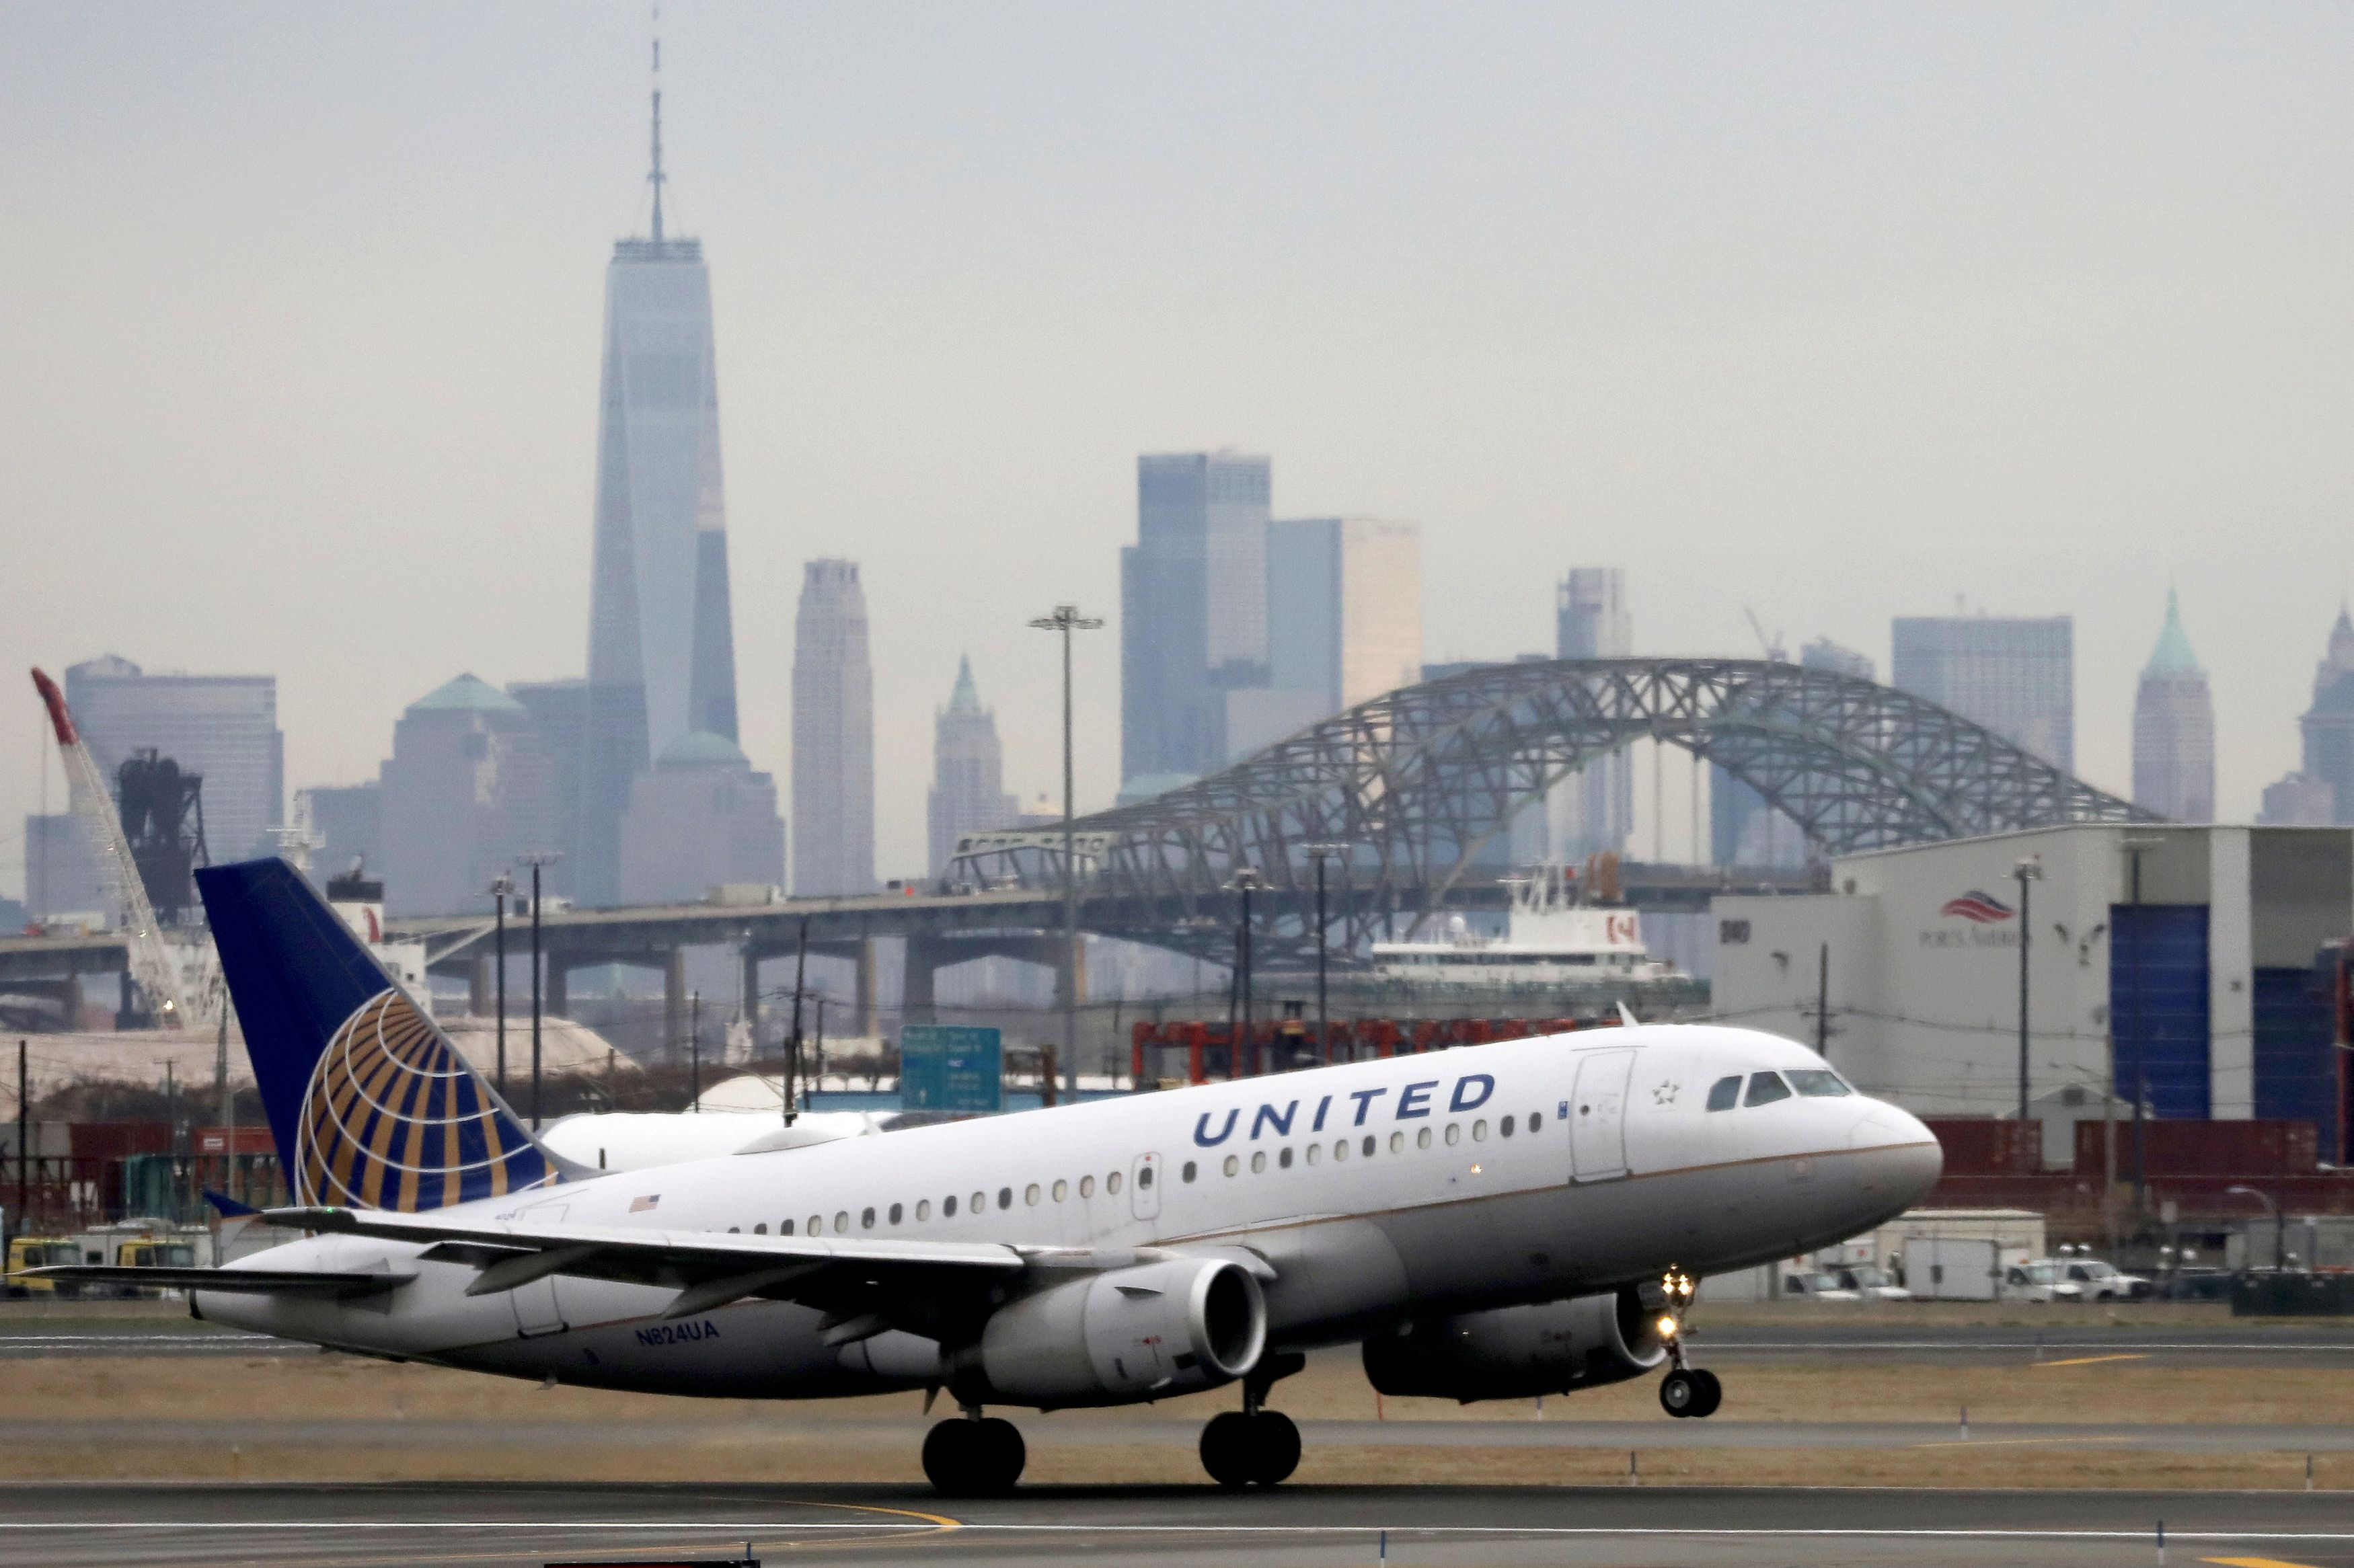 United Becomes First Major Airline To Require Employee Vaccination